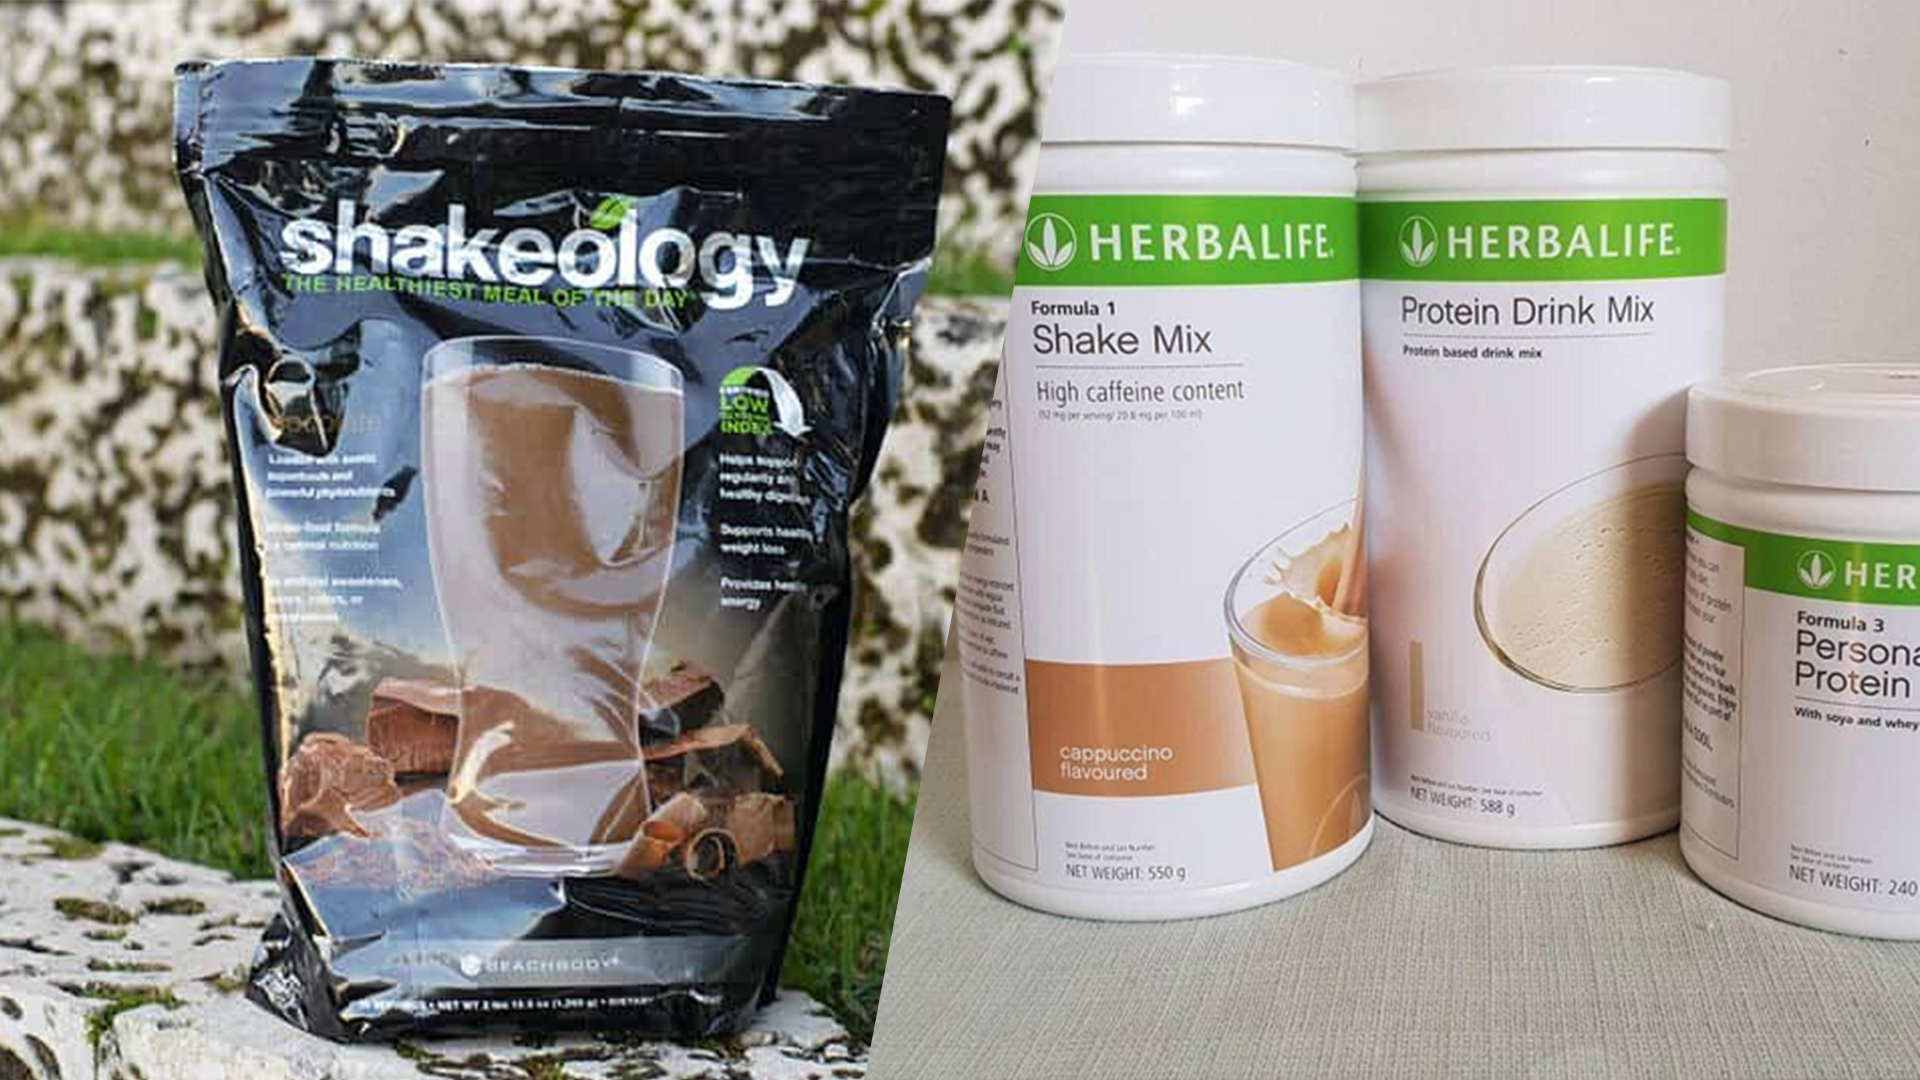 comparing Shakeology and Herbalife, Which is better for what